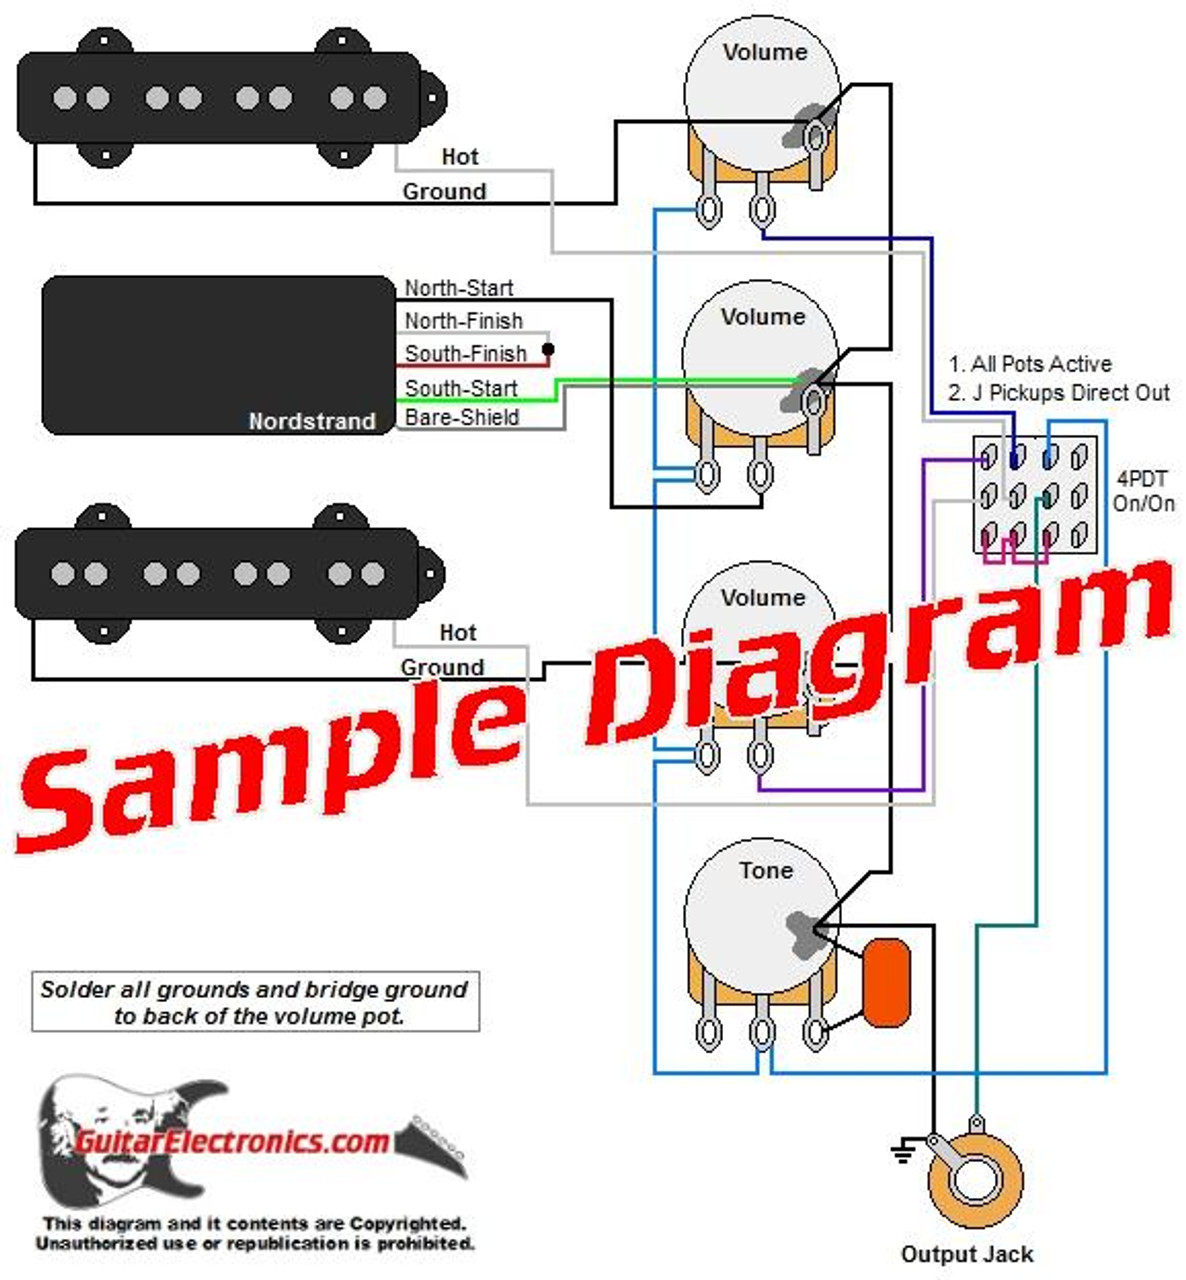 3 wire reed switch wiring diagram 3 pickup custom designed guitar wiring diagrams  custom designed guitar wiring diagrams